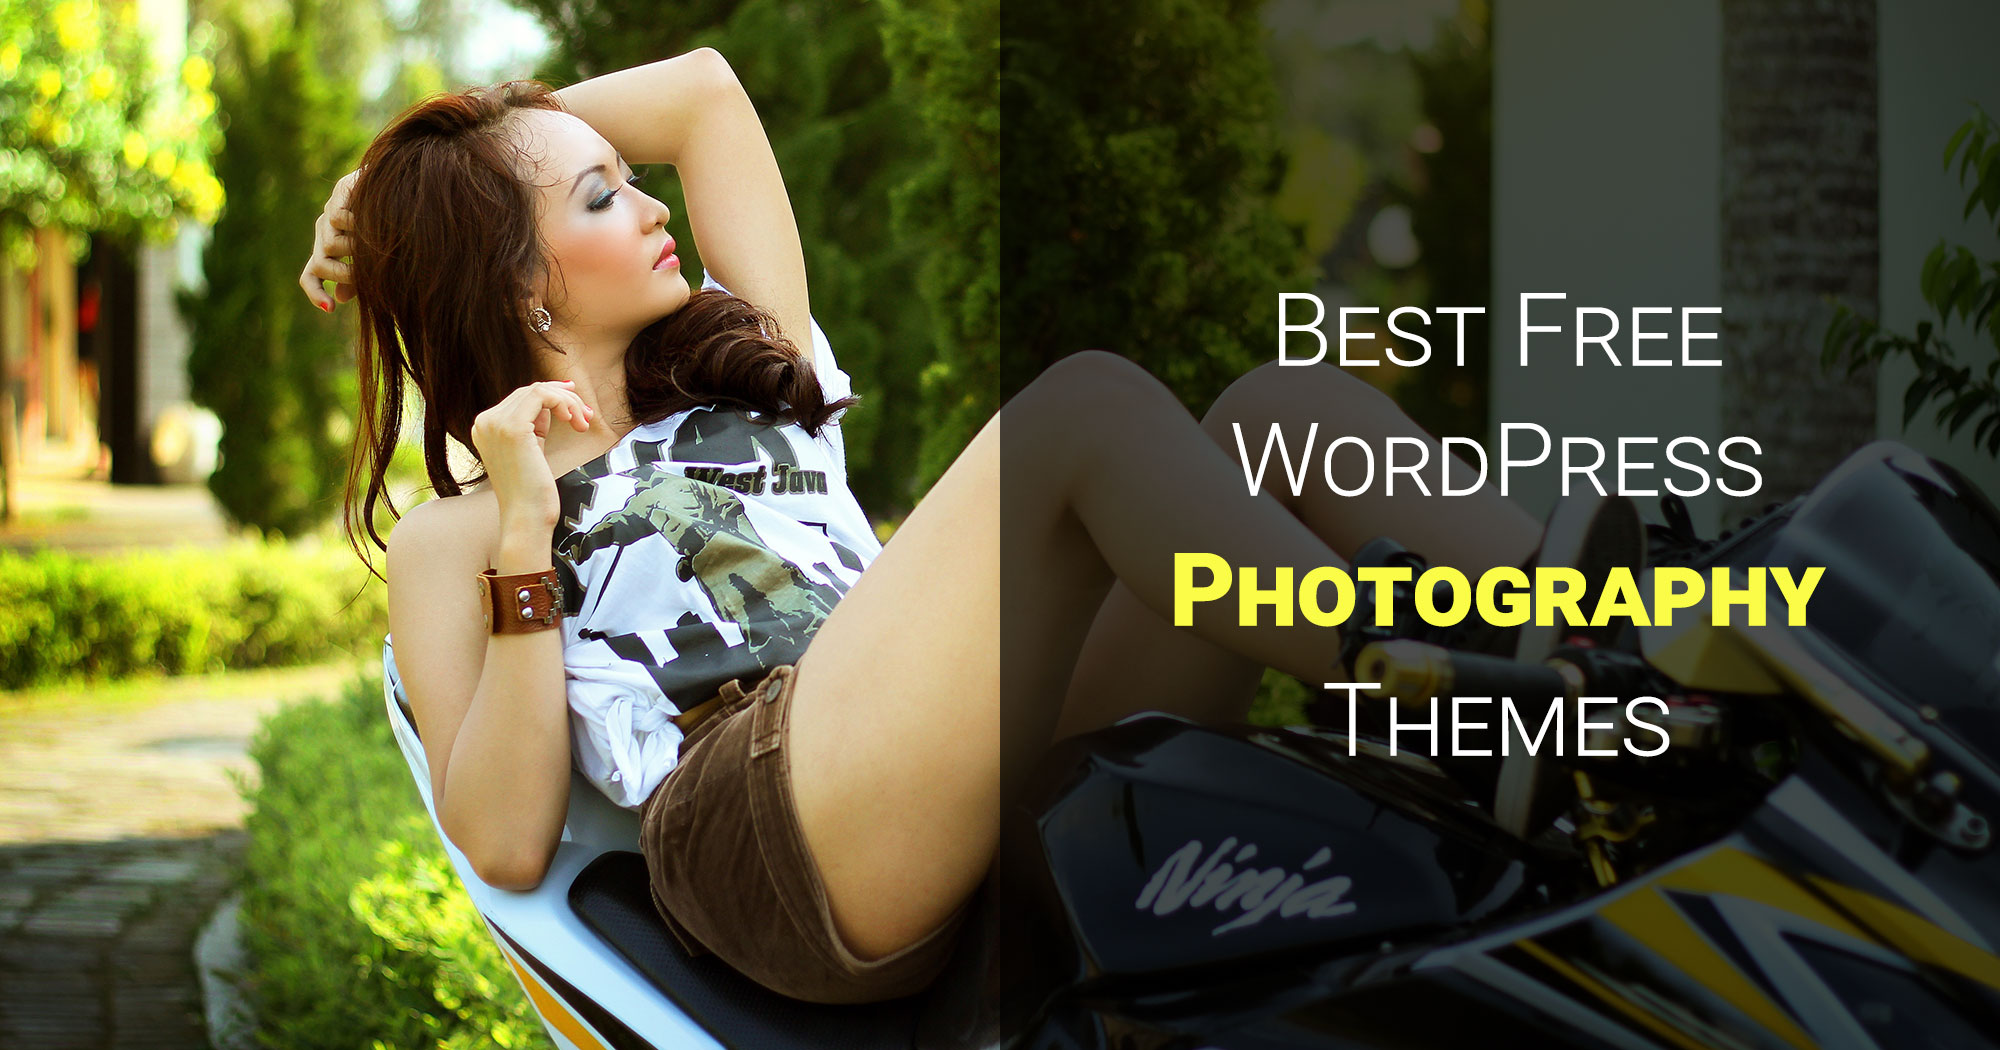 Best Free WordPress Photography Themes